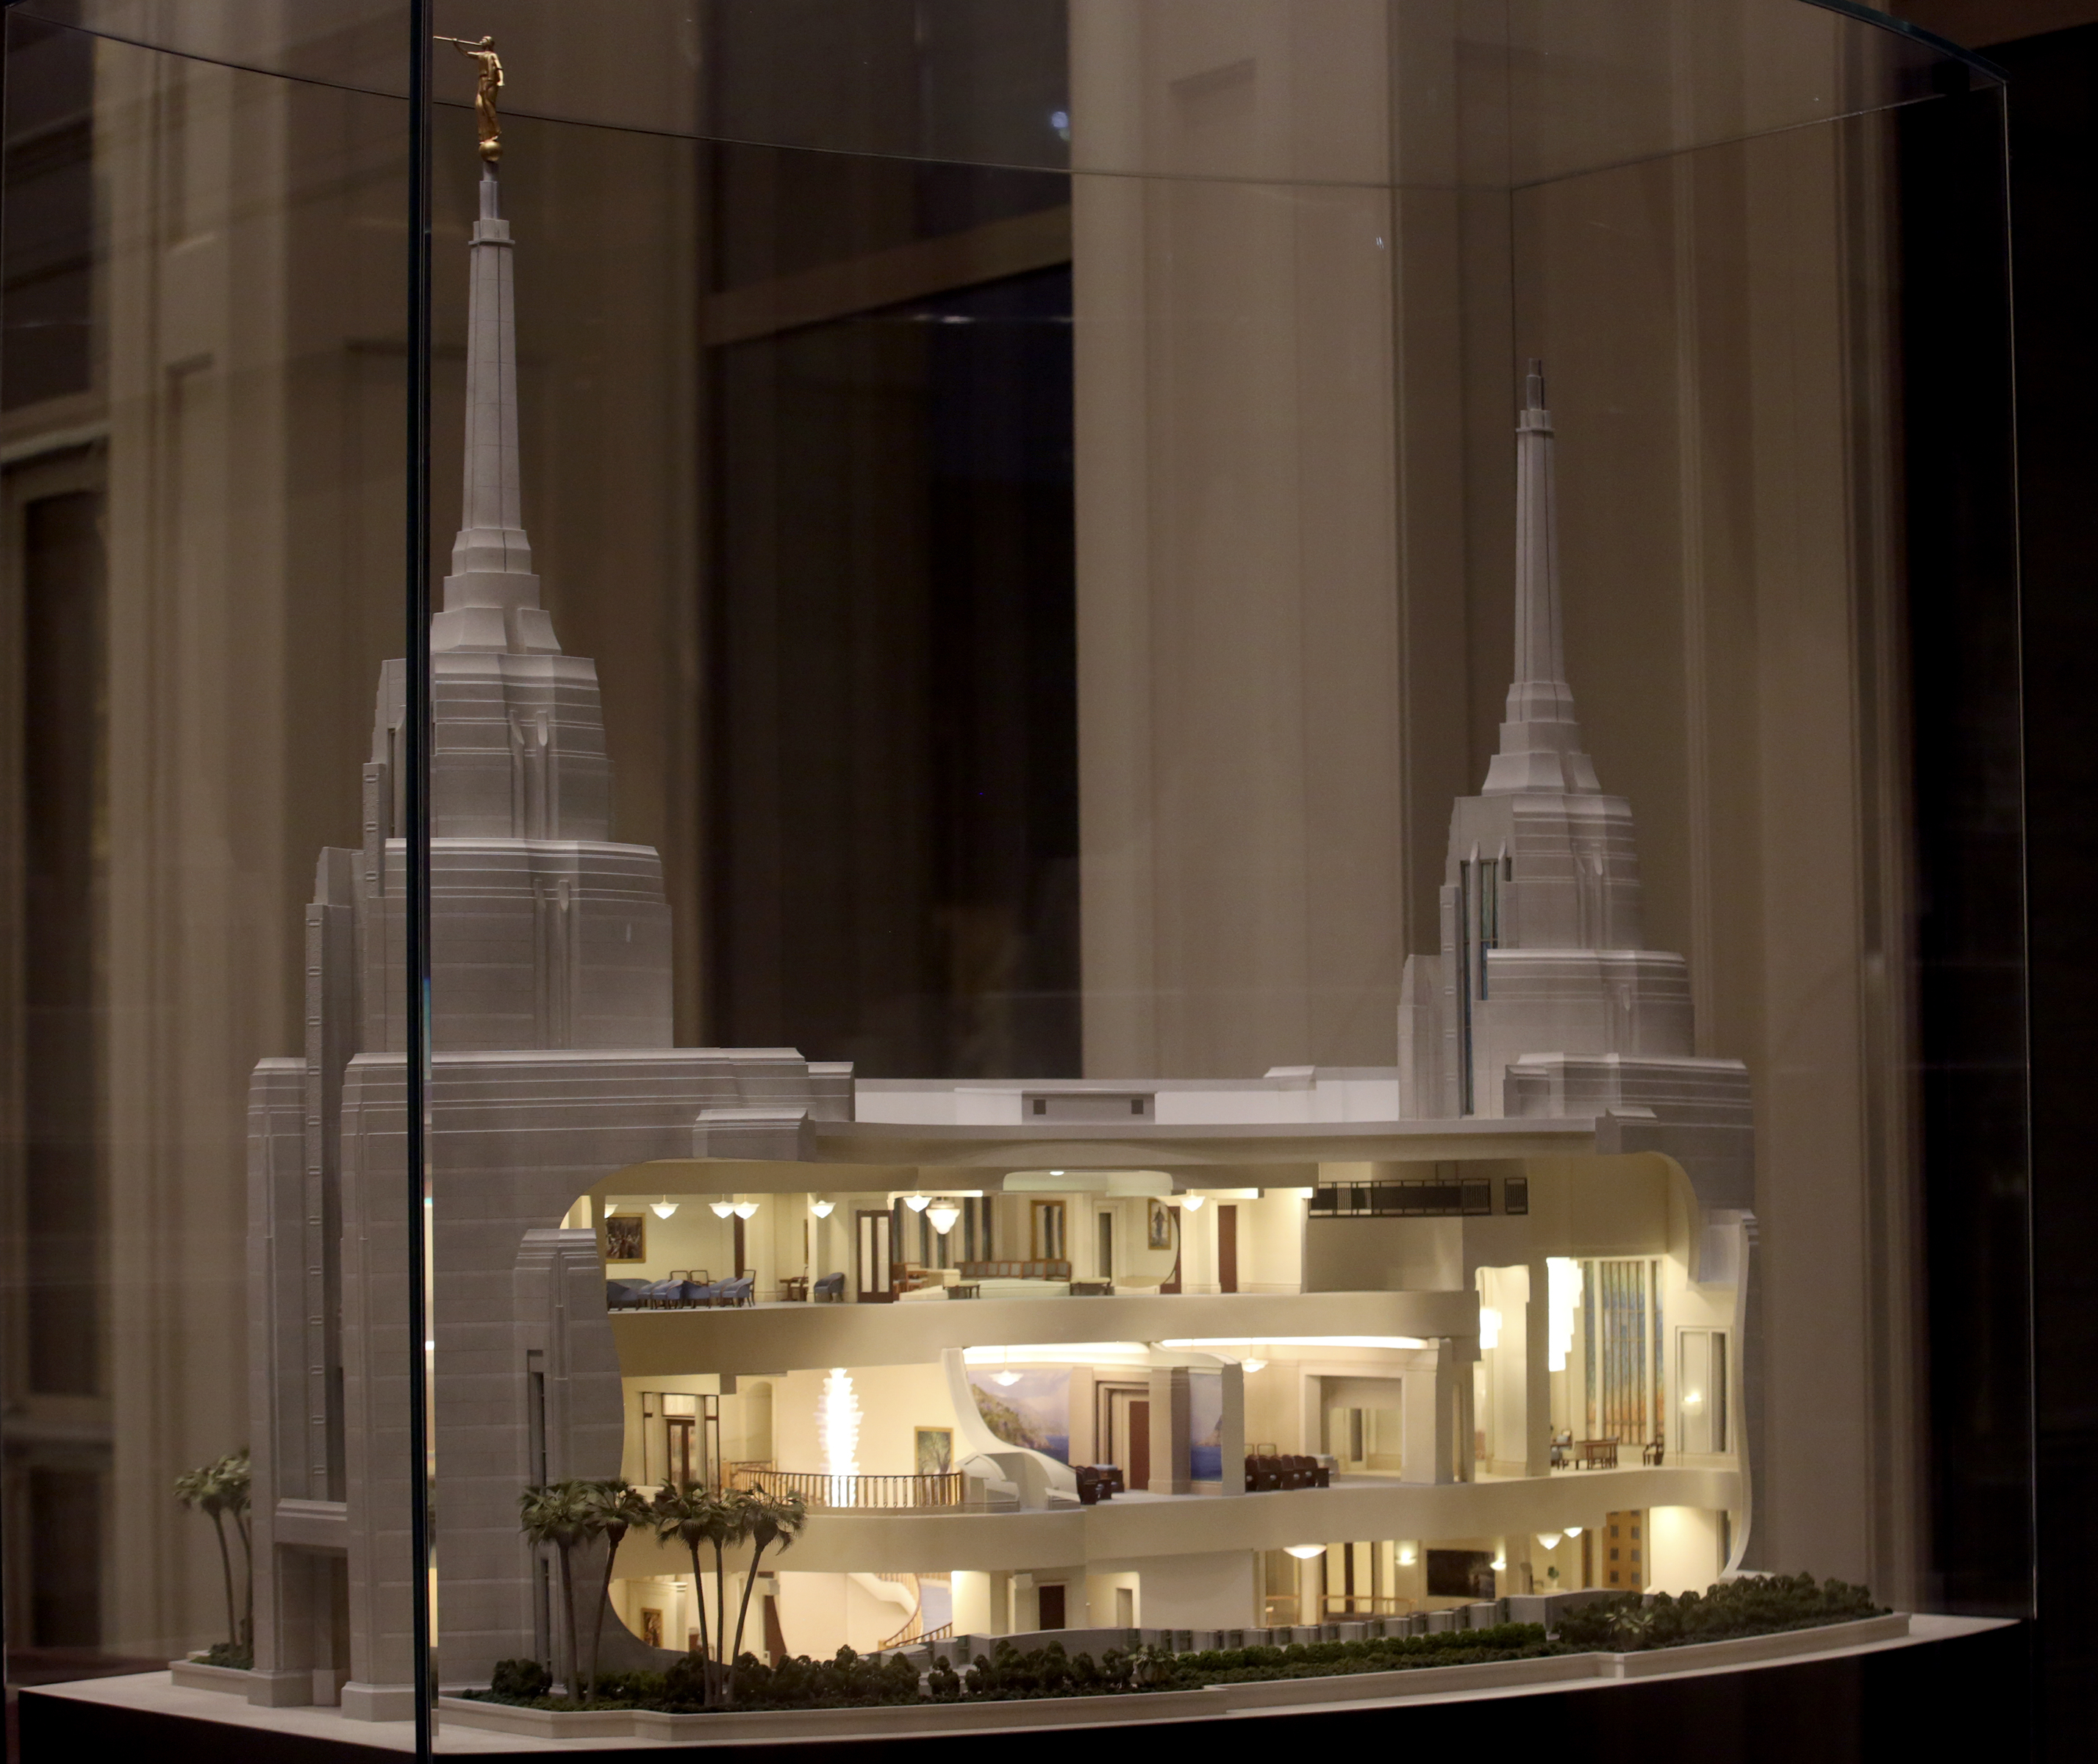 A model sized replication of the Rome Temple is visible in the Visitors' Center in Rome, Italy, on Friday, Nov. 16, 2018.